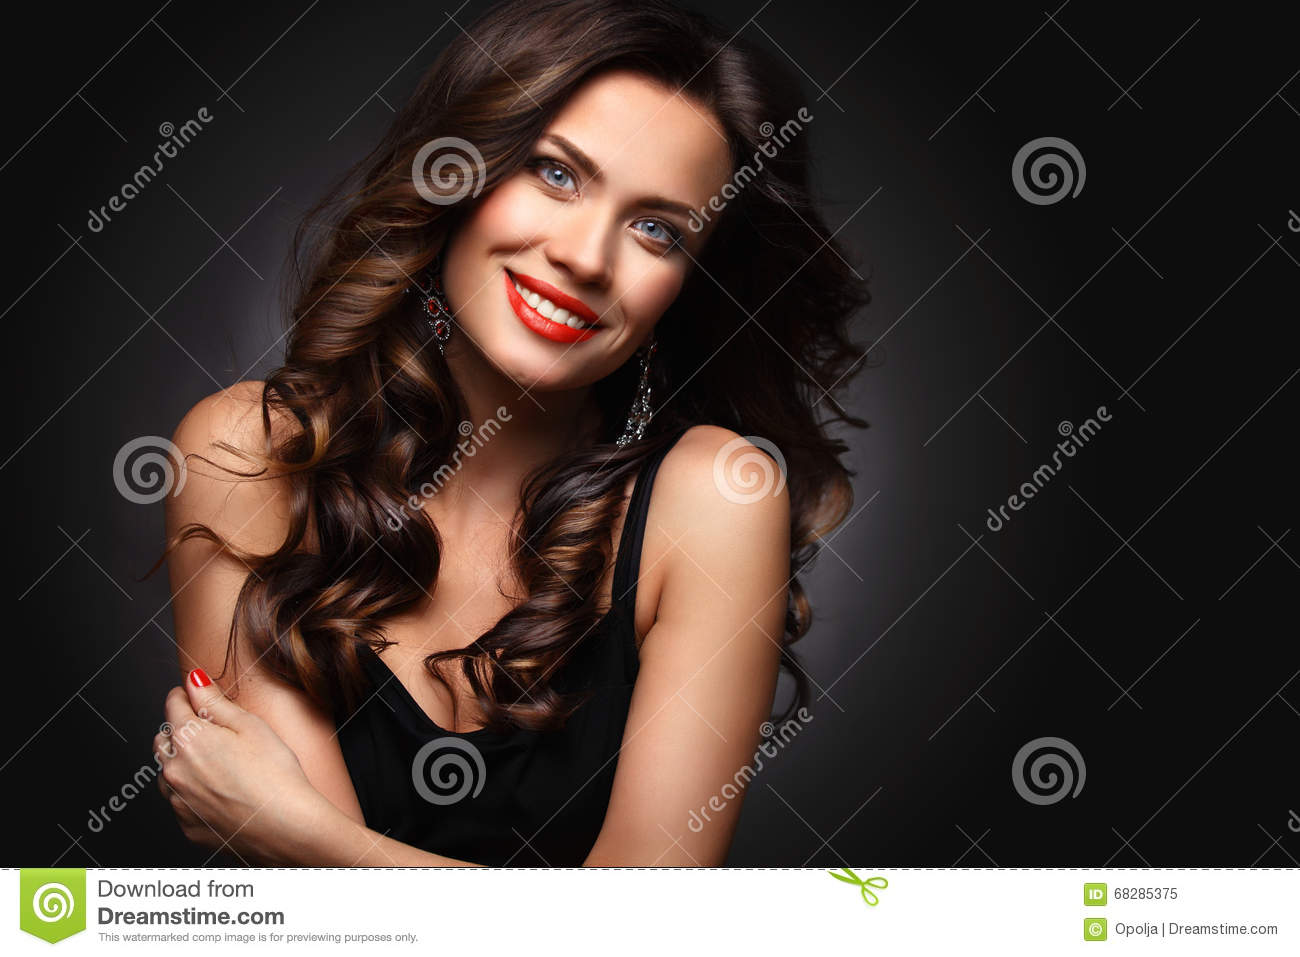 Beauty Model Woman with Long Brown Wavy Hair. Healthy Hair and Beautiful Professional Makeup. Red Lips and Smoky Eyes